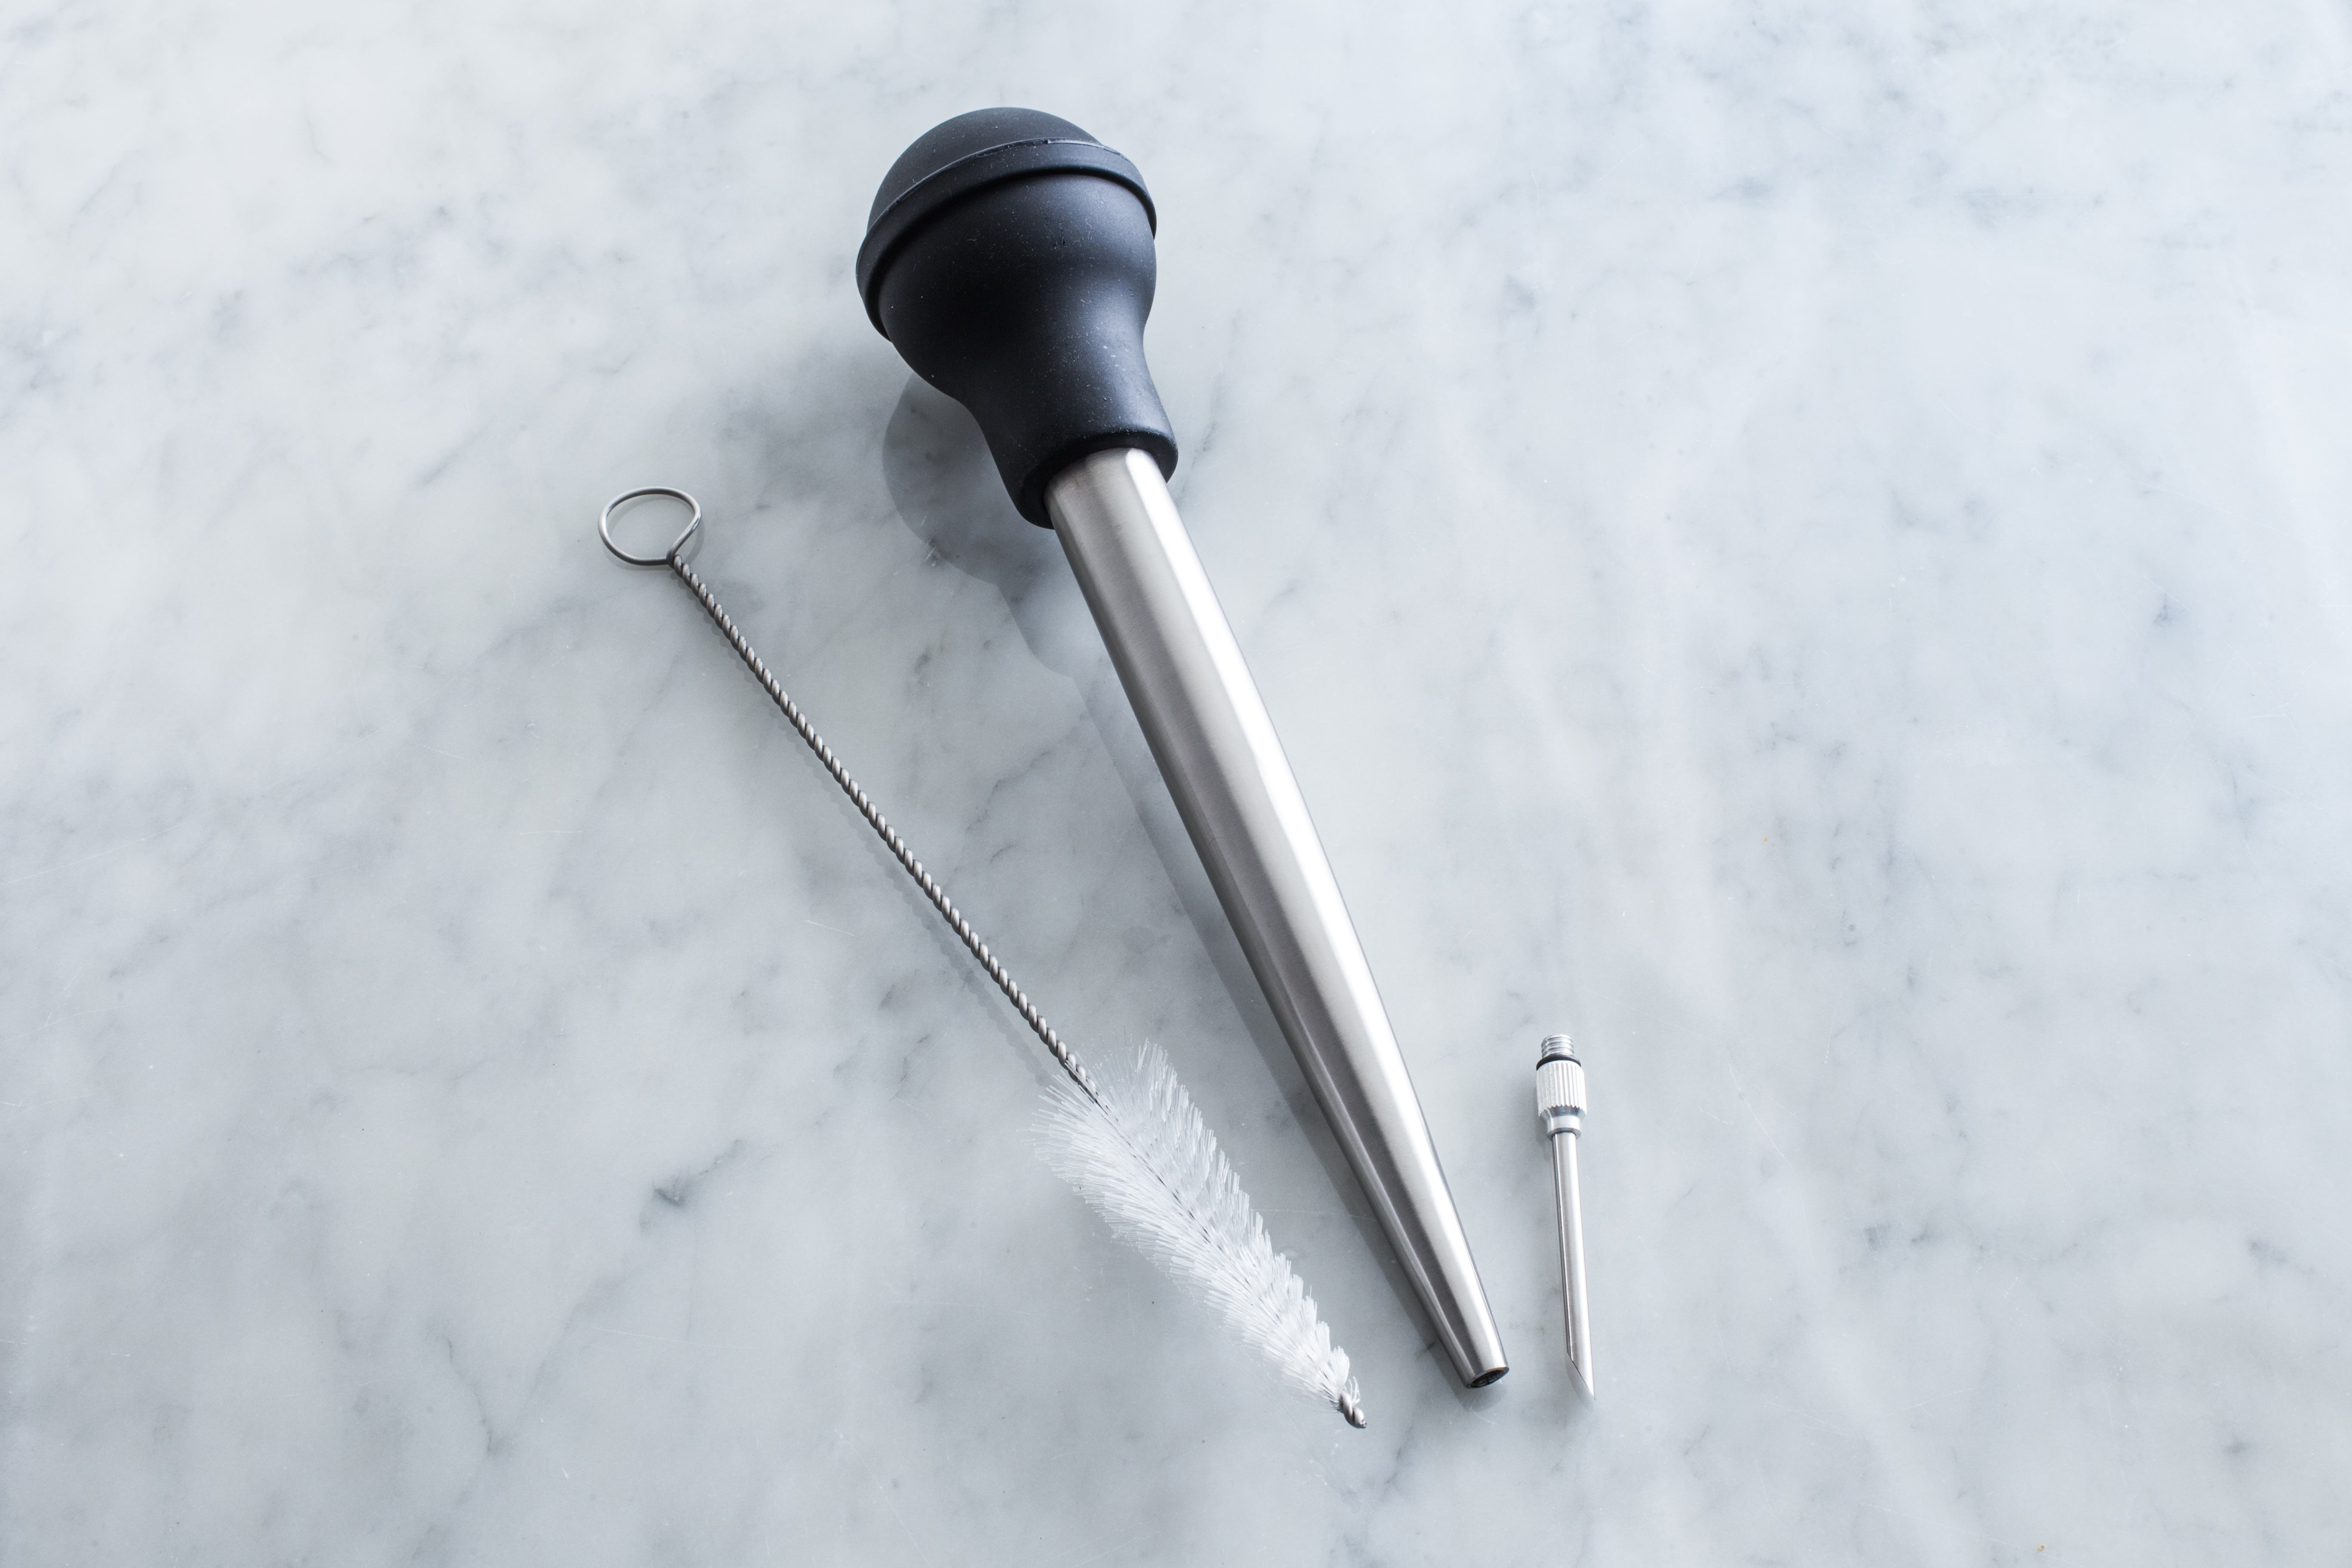 stainless steel turkey baster brush